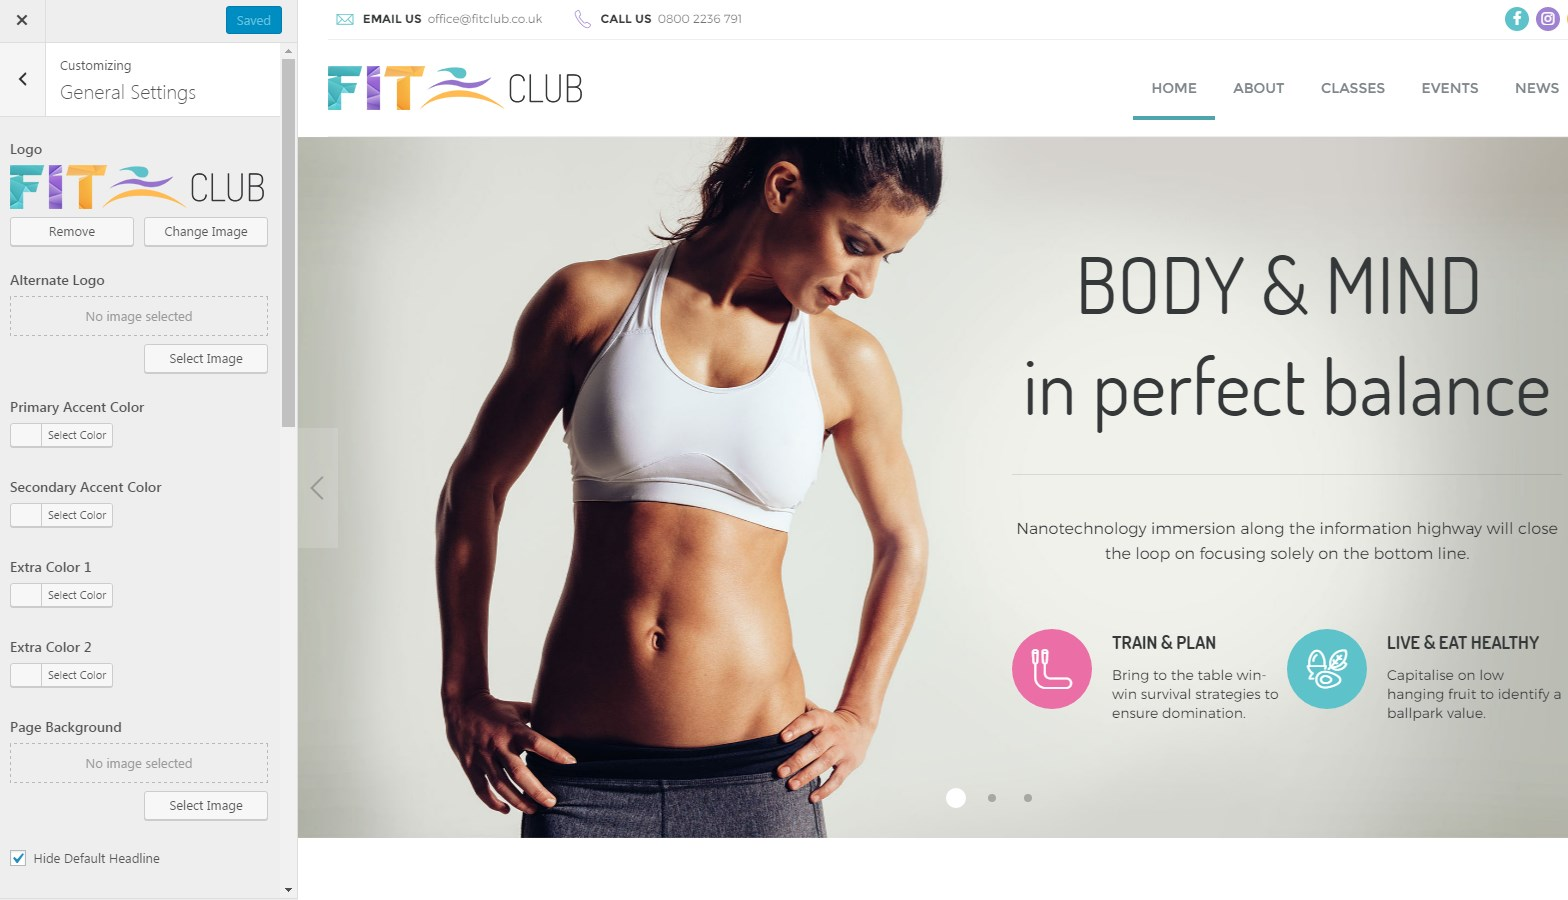 http://documentation.bold-themes.com/fitness/wp-content/uploads/sites/5/2016/07/11-a-1.jpg